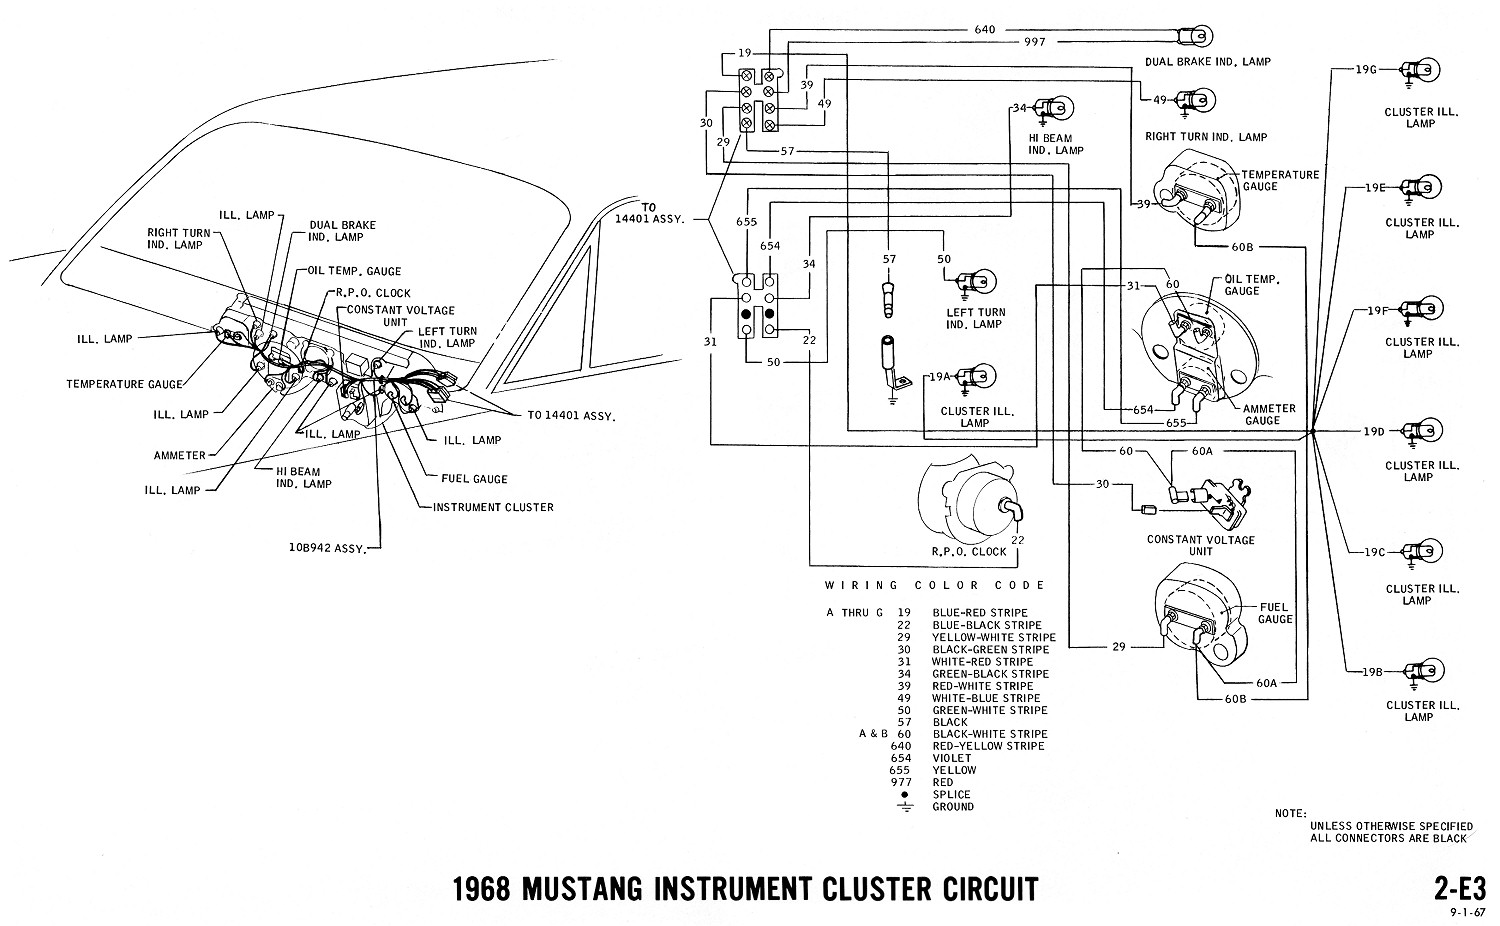 E3 1968 mustang wiring diagrams evolving software 1969 mustang instrument cluster wiring diagram at n-0.co